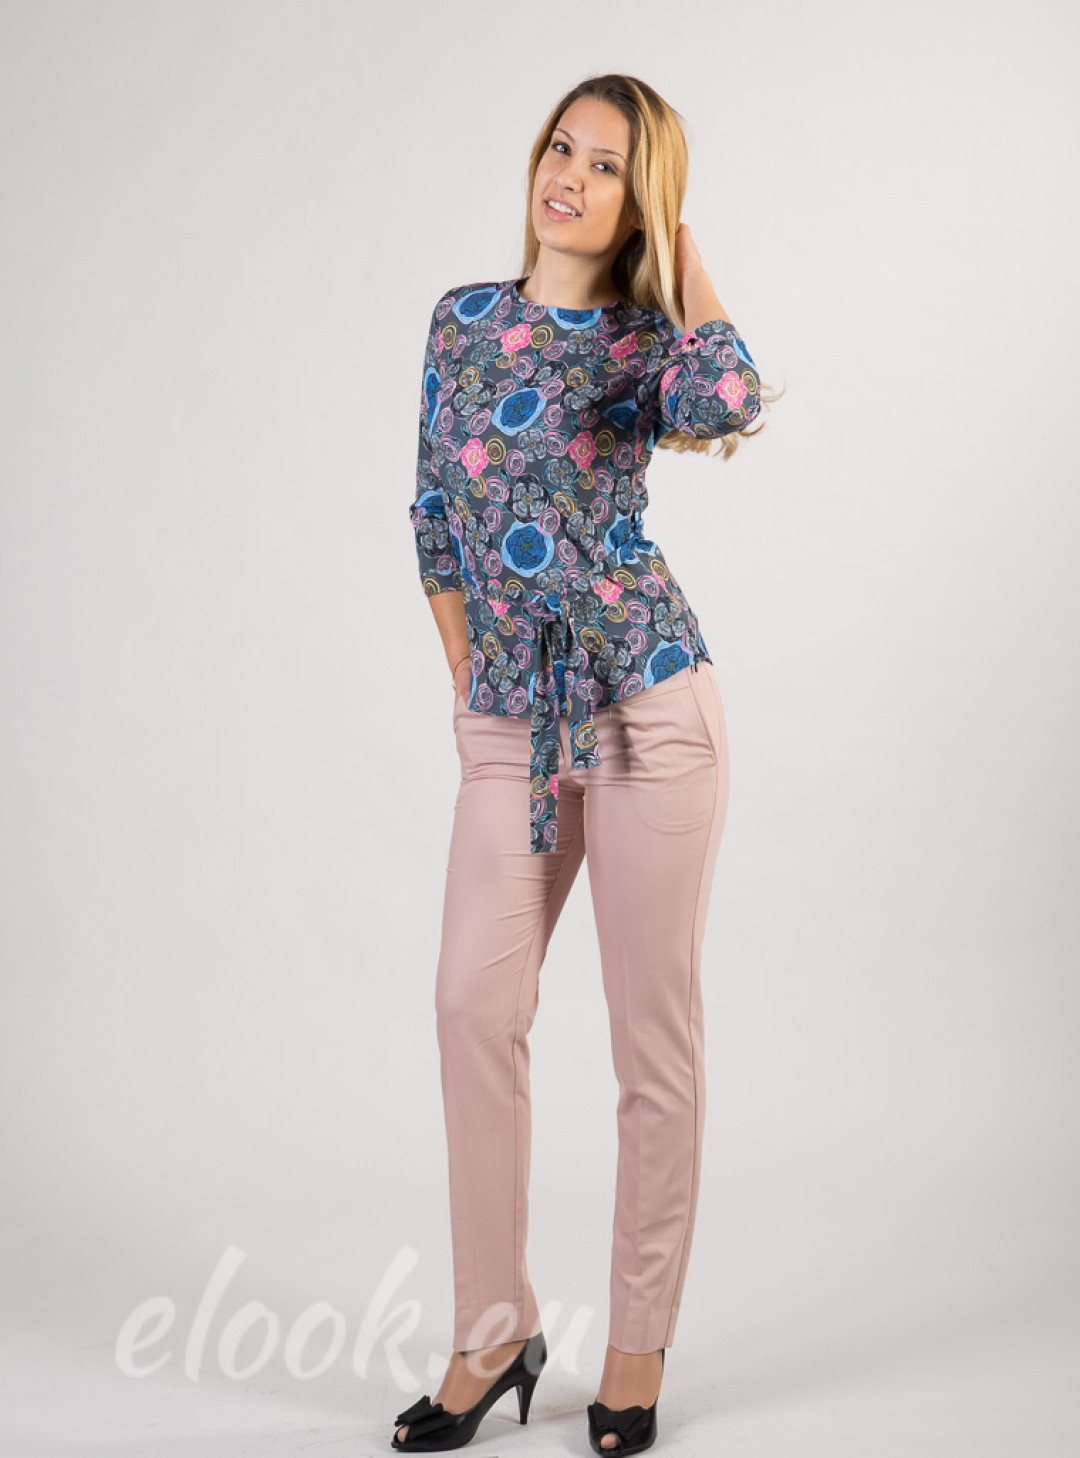 Blouse with 3/4 sleeves, belt,...